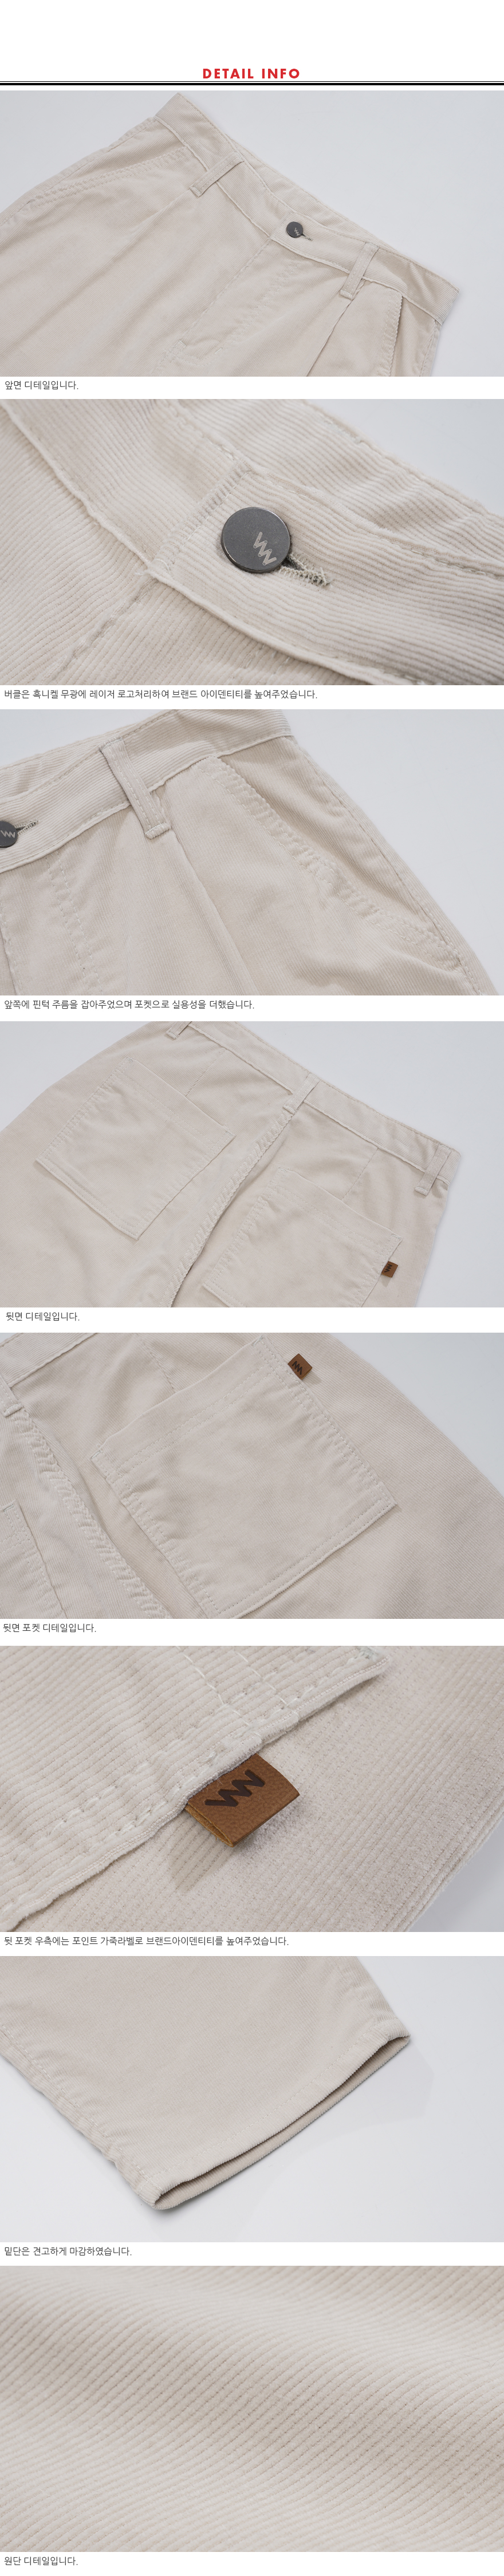 CJLP7349_detail_cream_mj.jpg